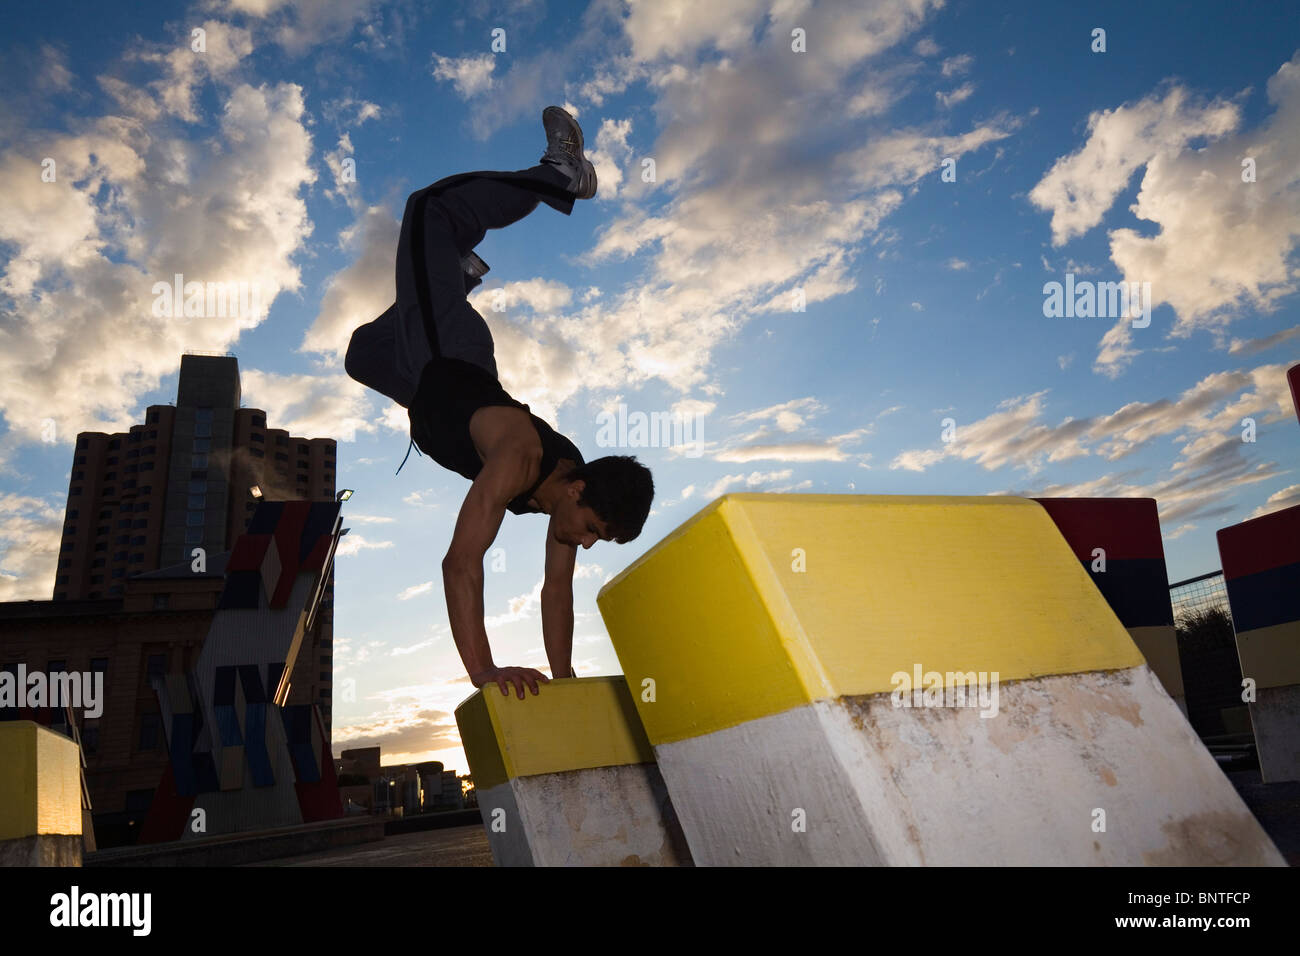 A teenager practises the urban sport of parkour (free running) in Adelaide, South Australia, AUSTRALIA. - Stock Image